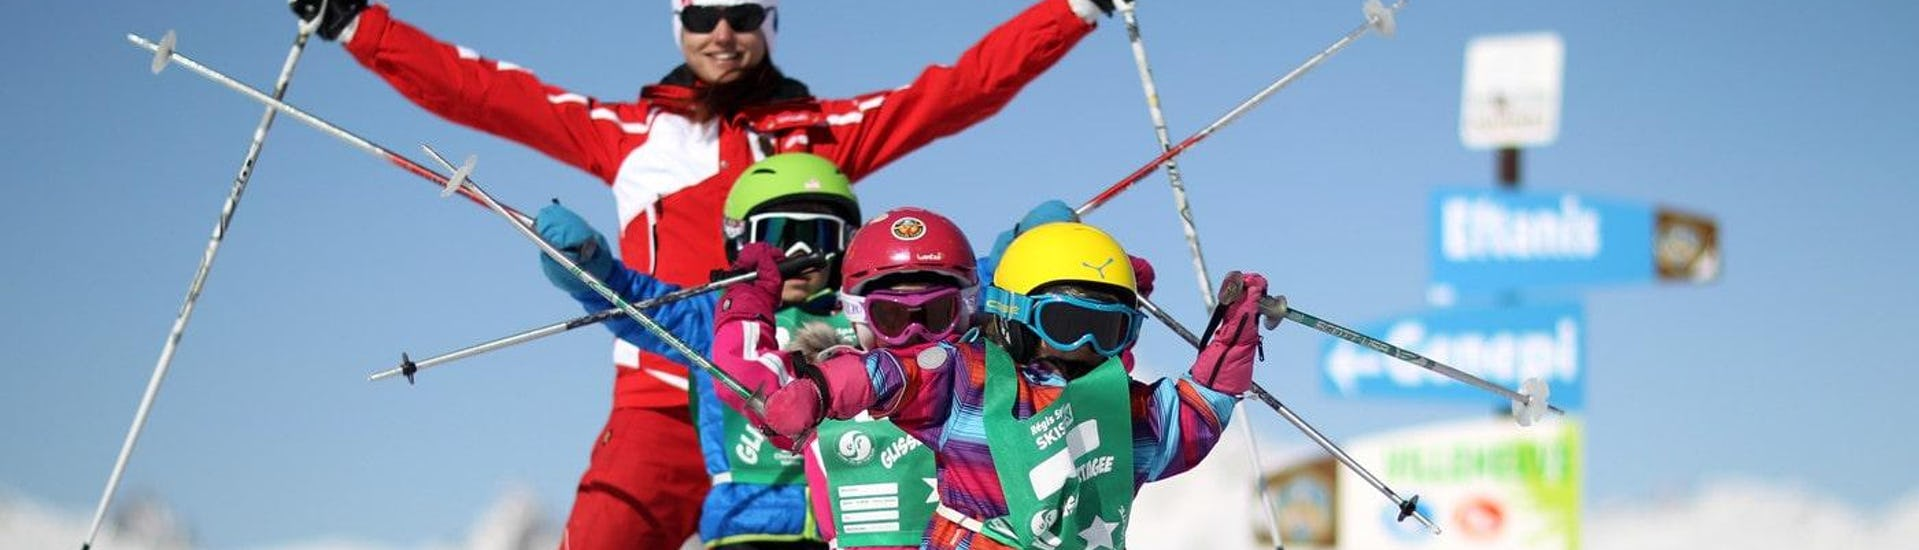 Kids are standing one behind the other with their ski poles up in the air during their Kids Ski Lessons (6-12 years) - Beginner with the ski school ESF Alpe d'Huez.